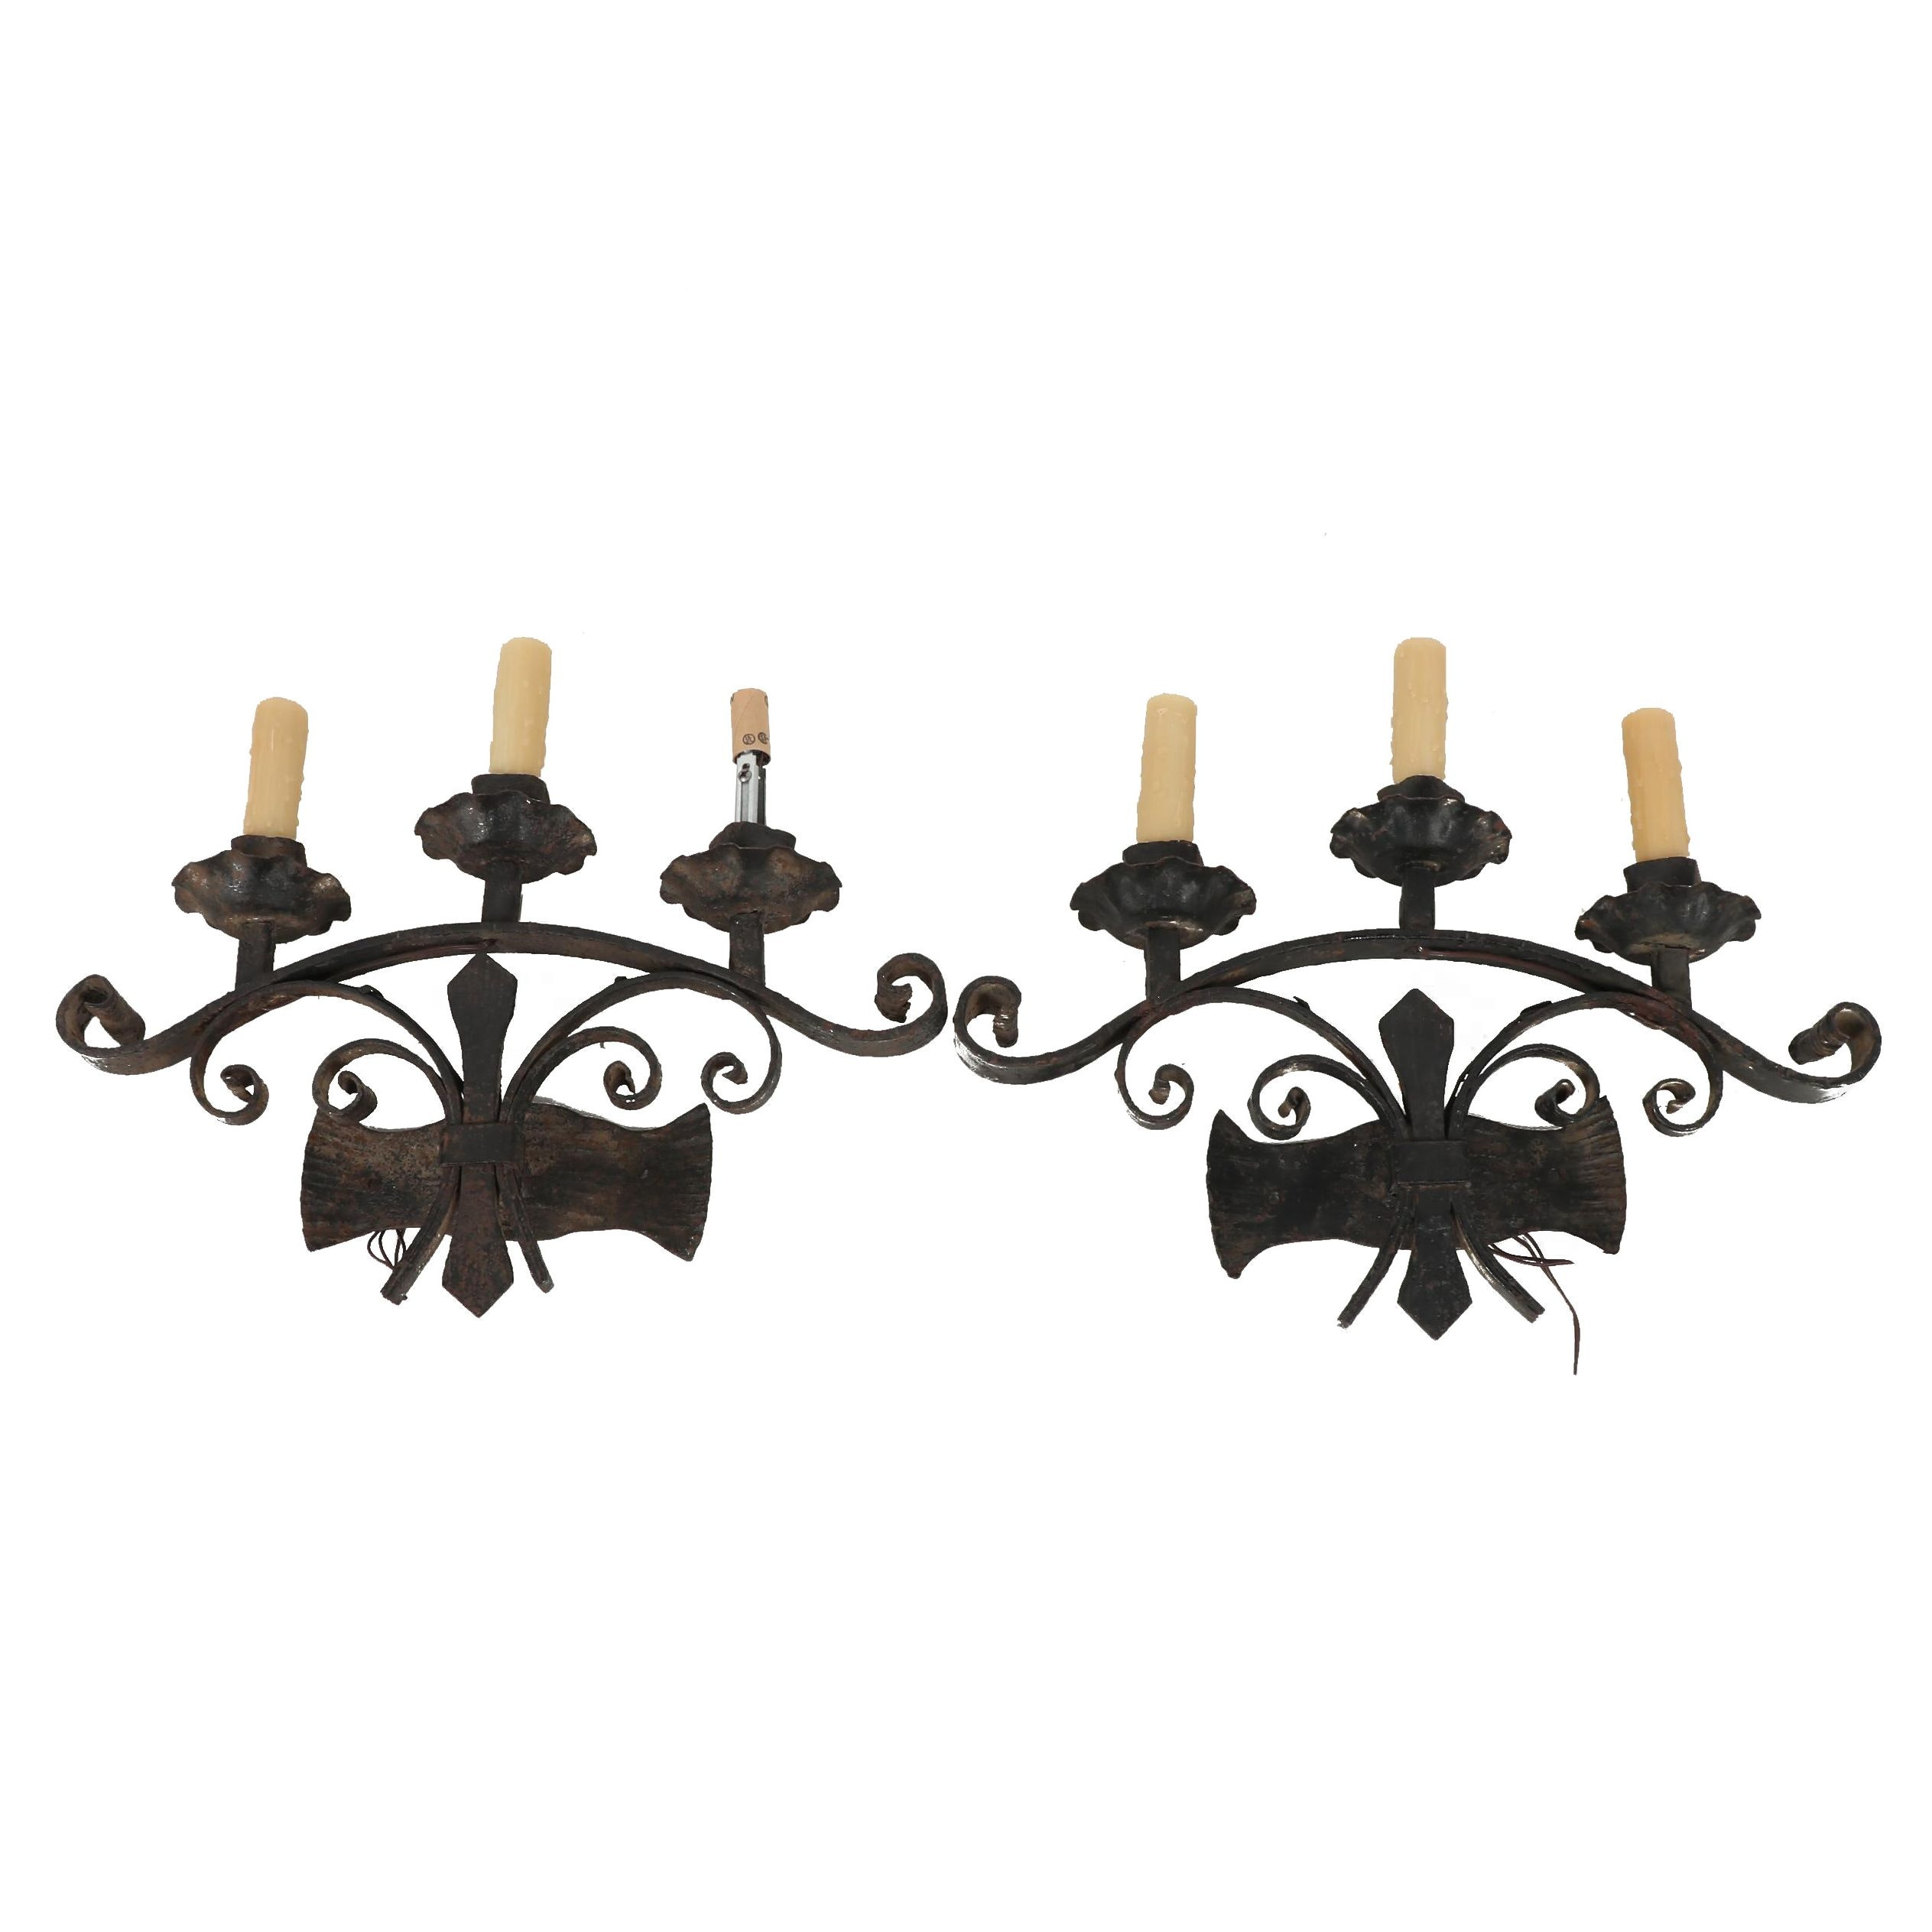 Wrought Iron Electrified Wall Sconces with Faux Candles